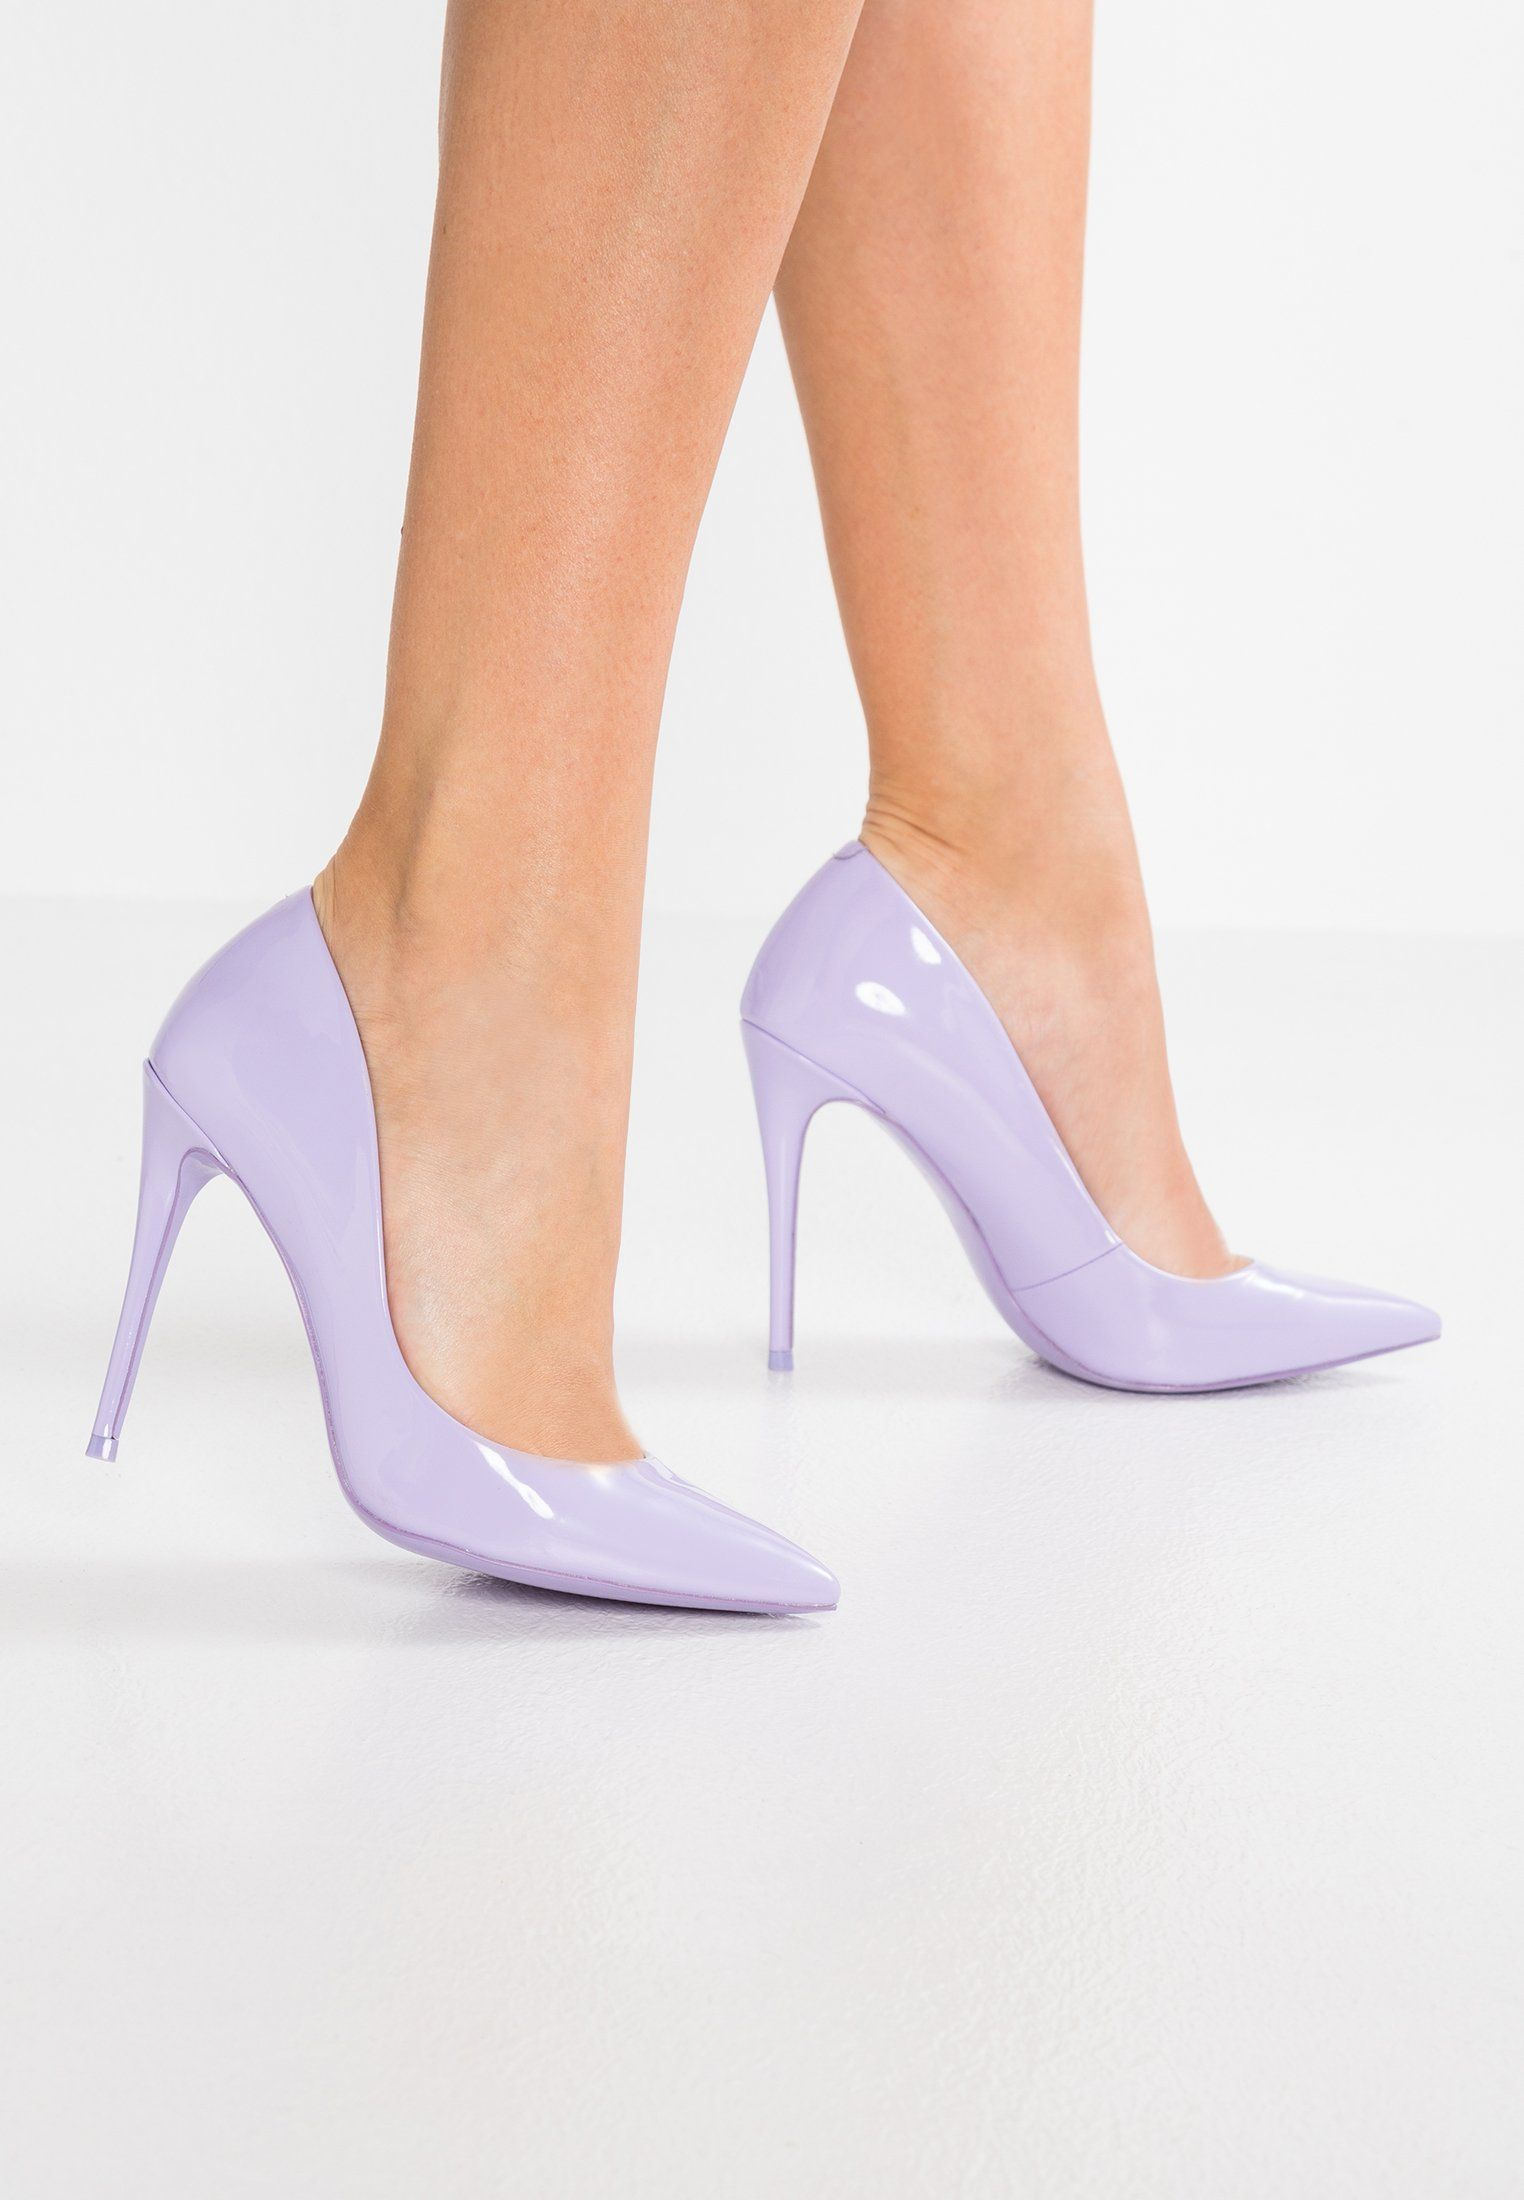 9653e3f2993 ALDO STESSY - High heels - lilac - Zalando.co.uk